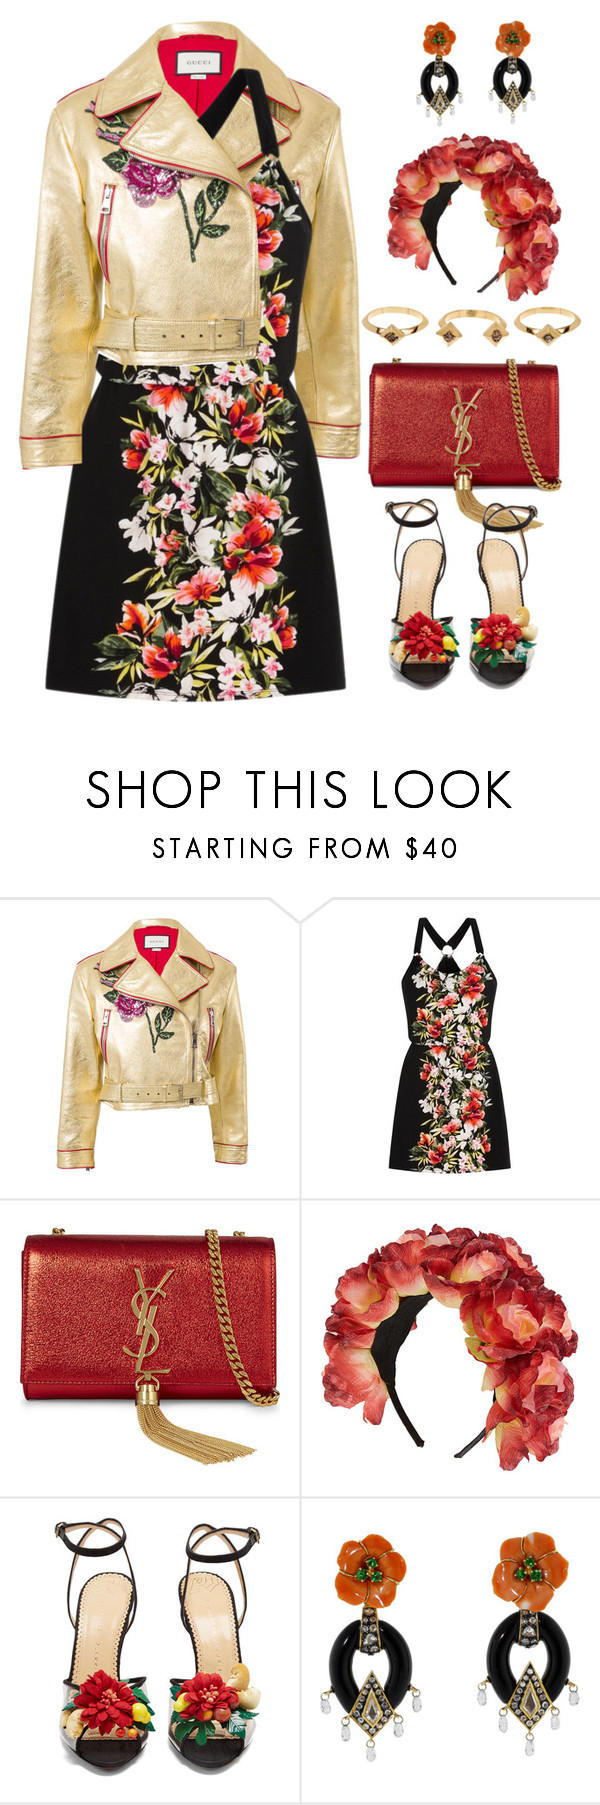 """Untitled #475"" by froyalbiatsii ❤ liked on Polyvore featuring Gucci, White House Black Market, Yves Saint Laurent, Topshop, Charlotte Olympia, Lotus Arts de Vivre, House of Harlow 1960 and Flowers"